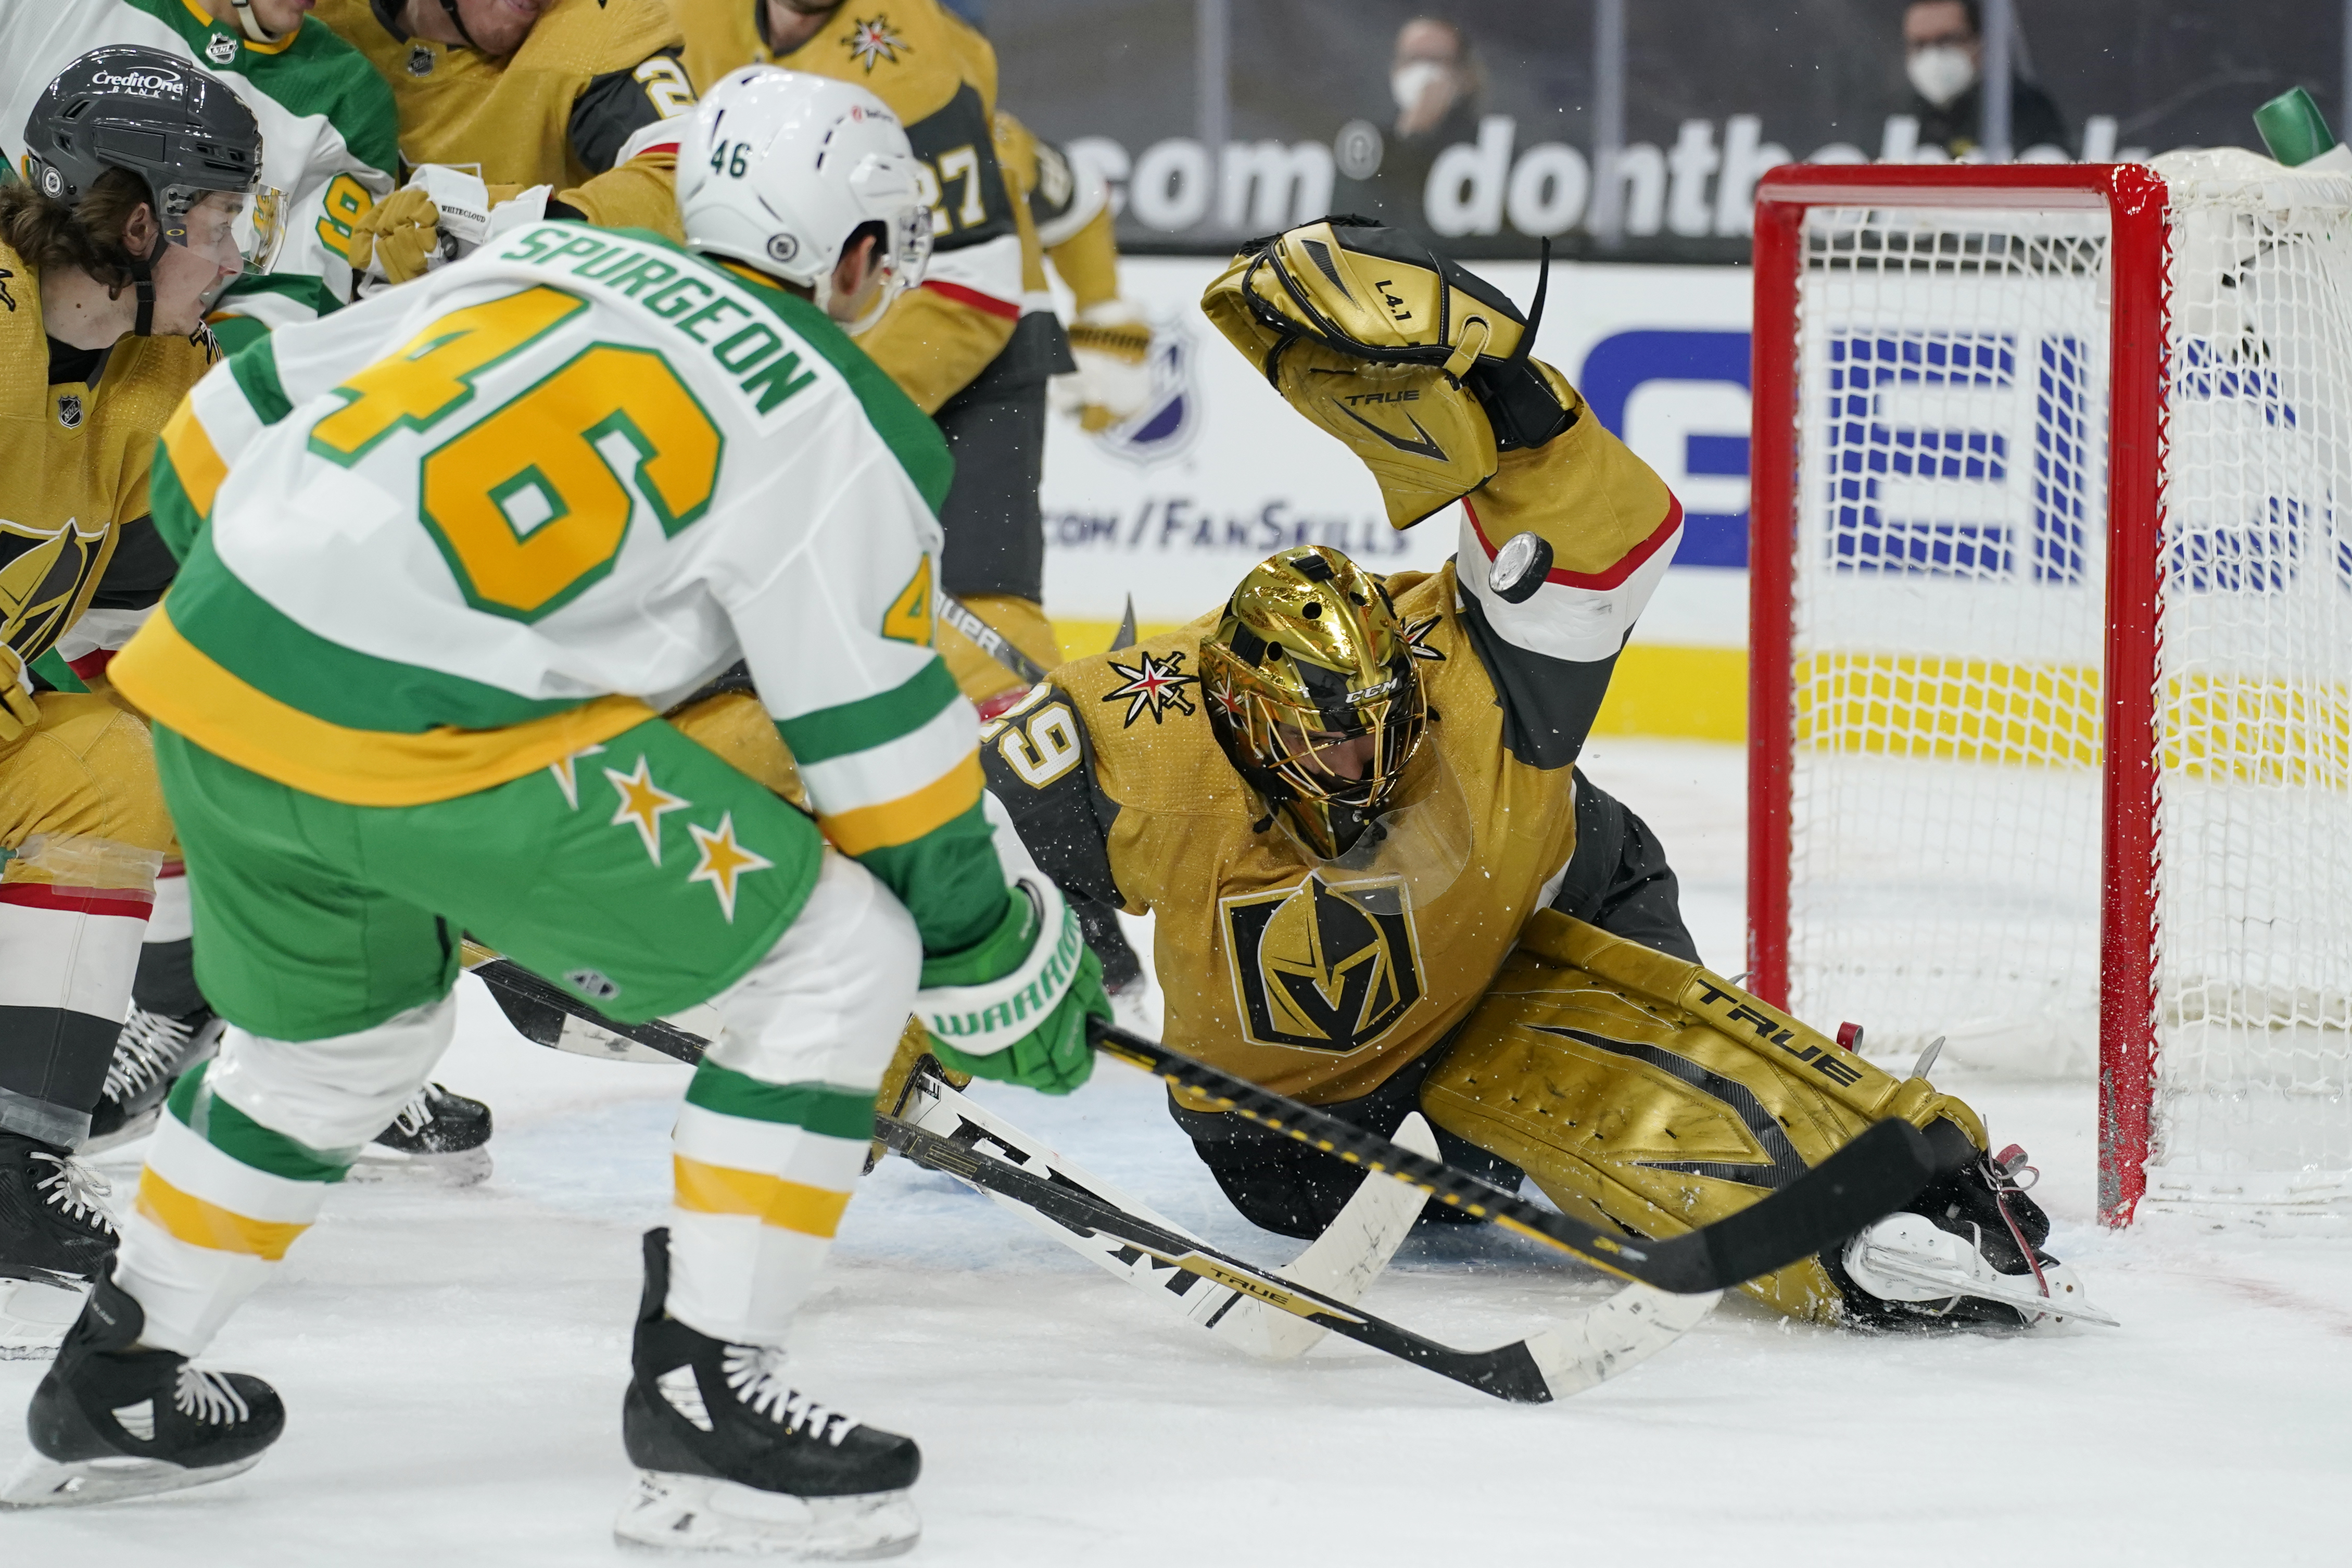 Marc-Andre Fleury making a save from Jared Spurgeon.